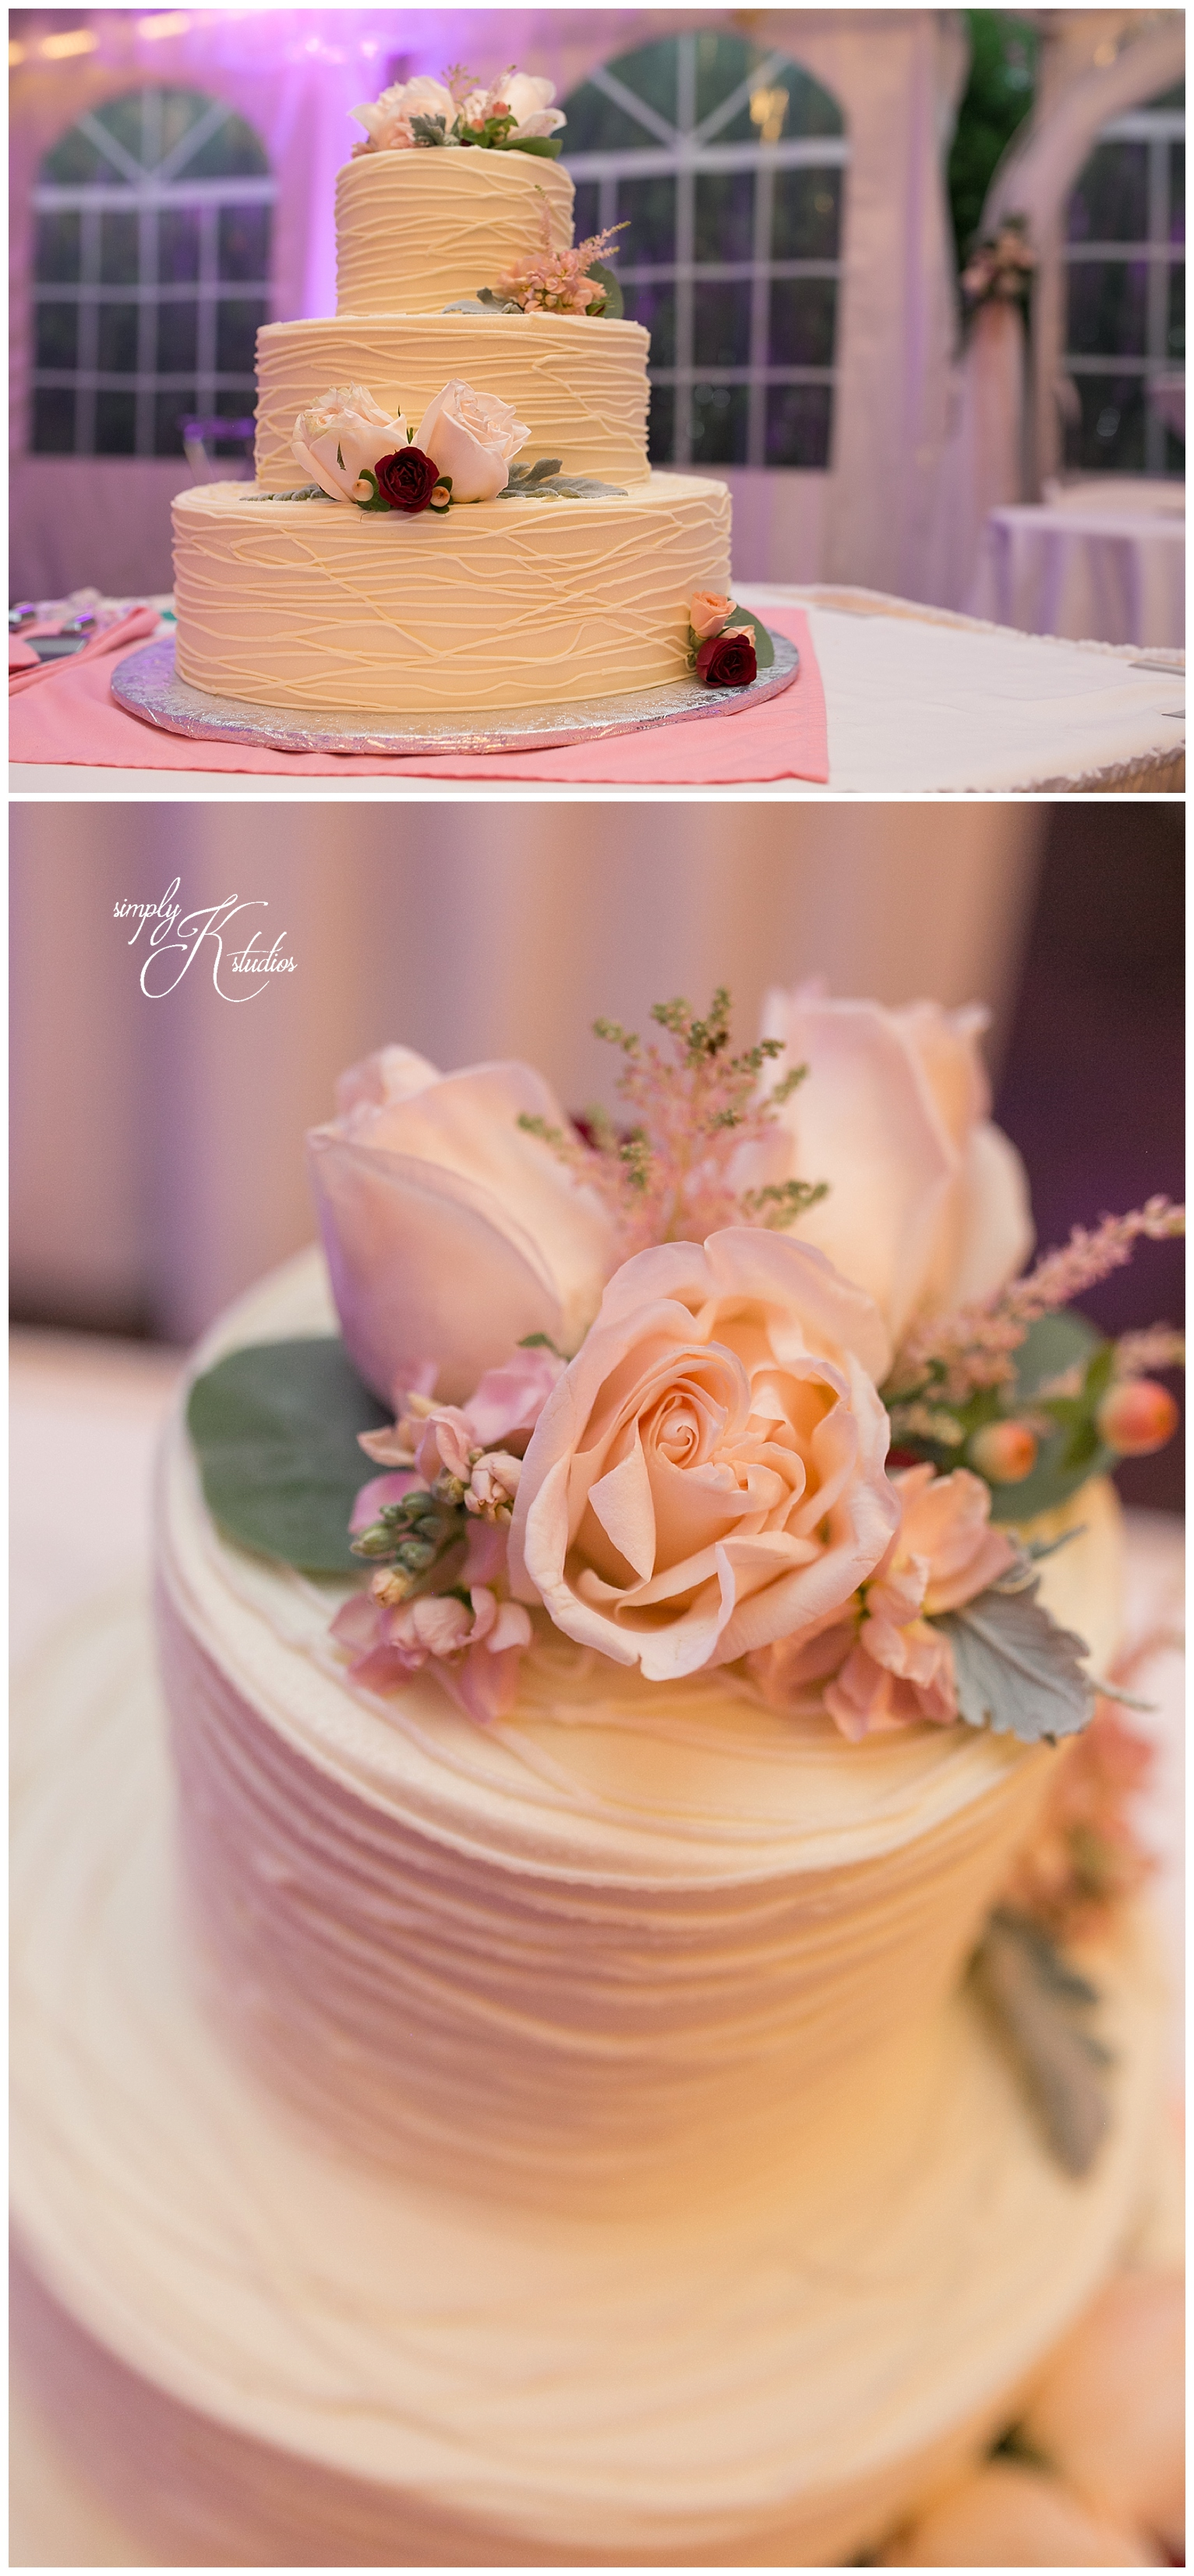 Wedding Cake near Sturbridge MA.jpg